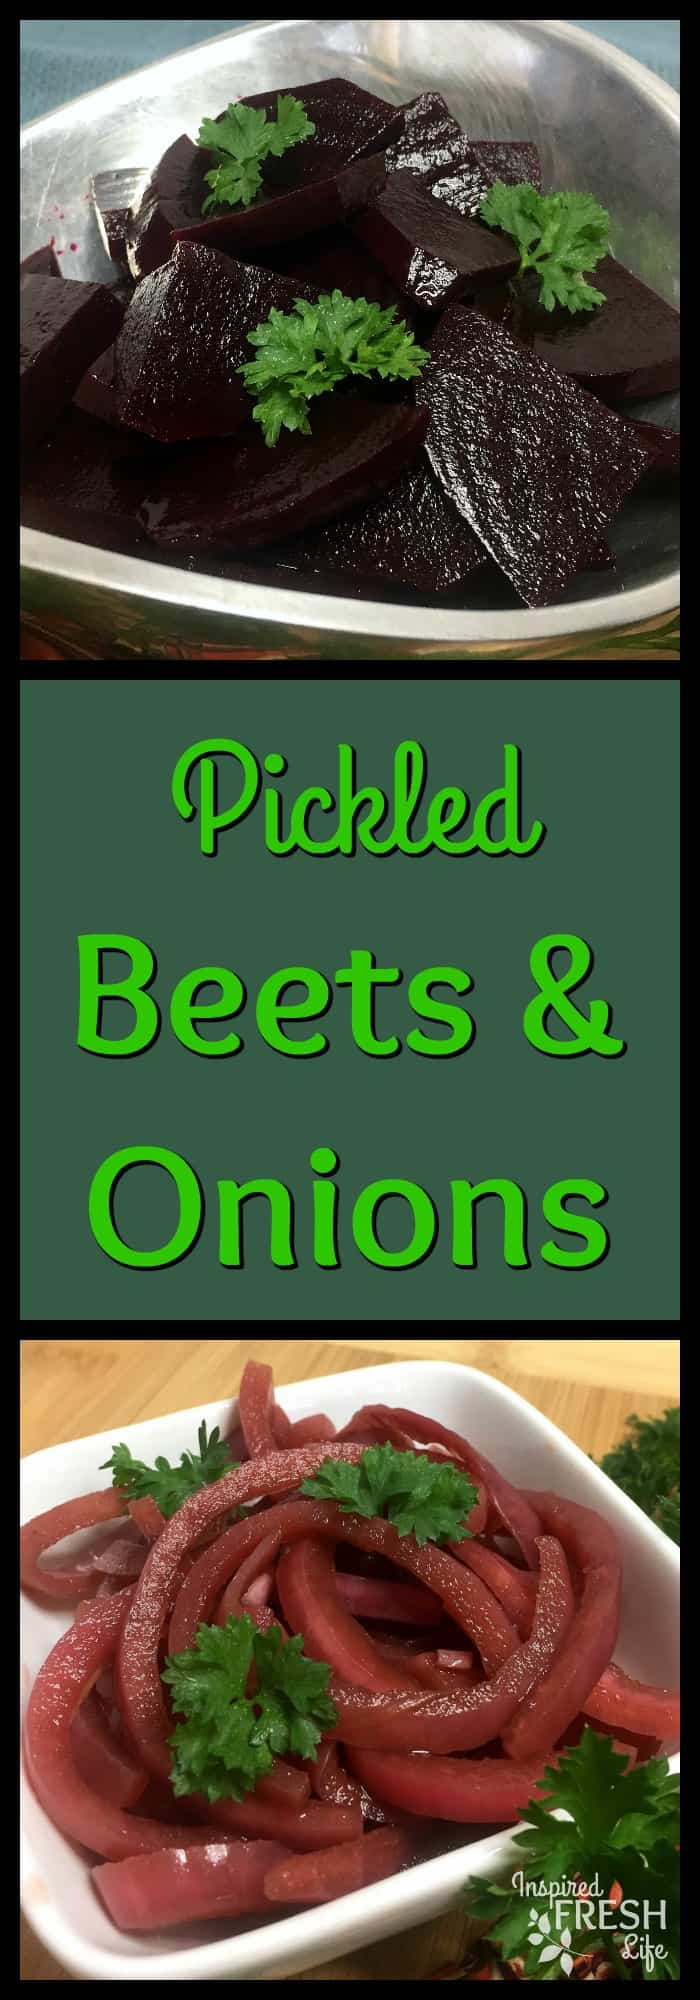 Pinterest image for Pickled Beets and Onions